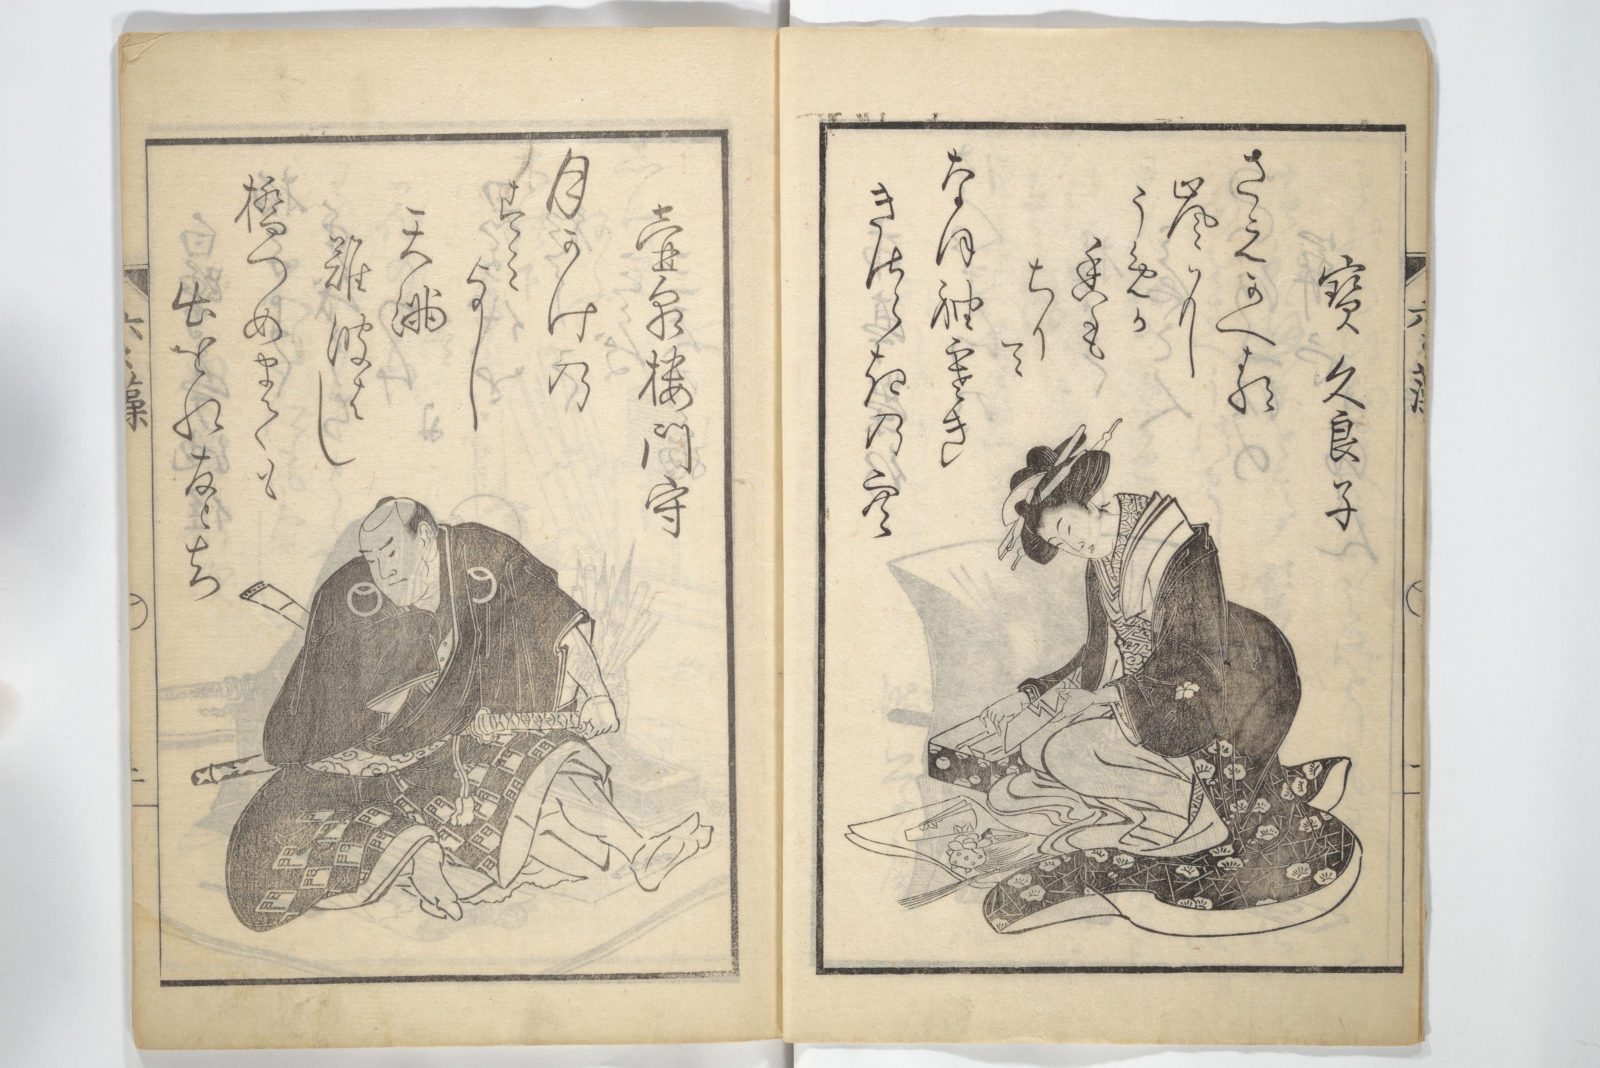 The Scales of the Carp (Koi no uroko), Illustrations of Poets